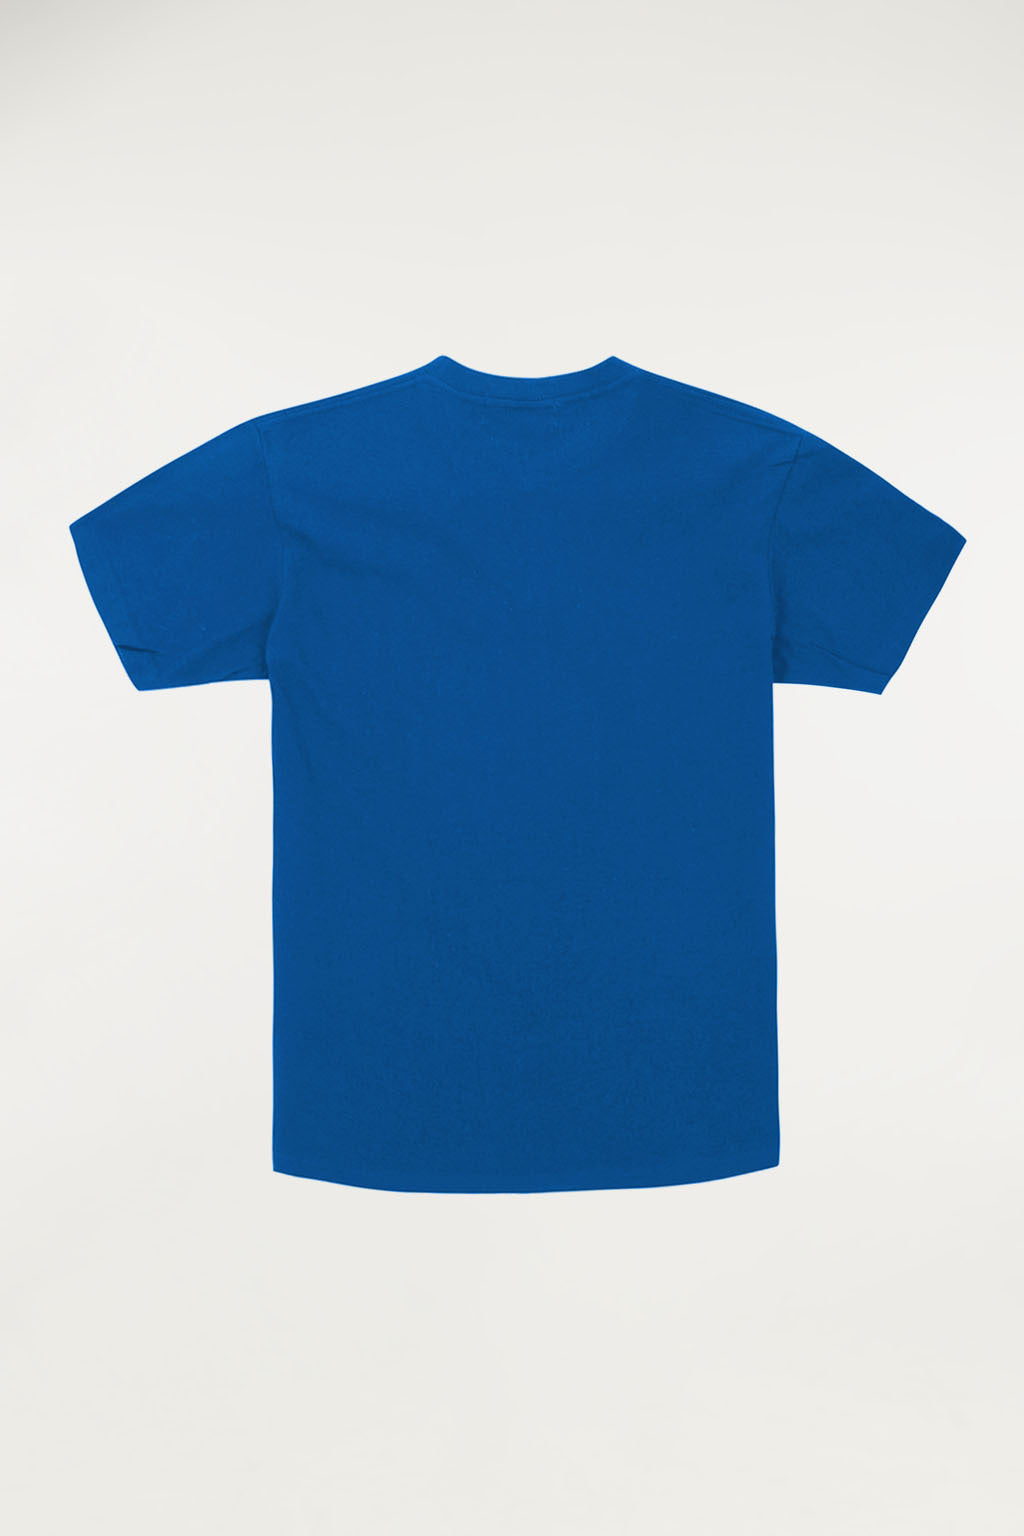 Royal blue iconic tee